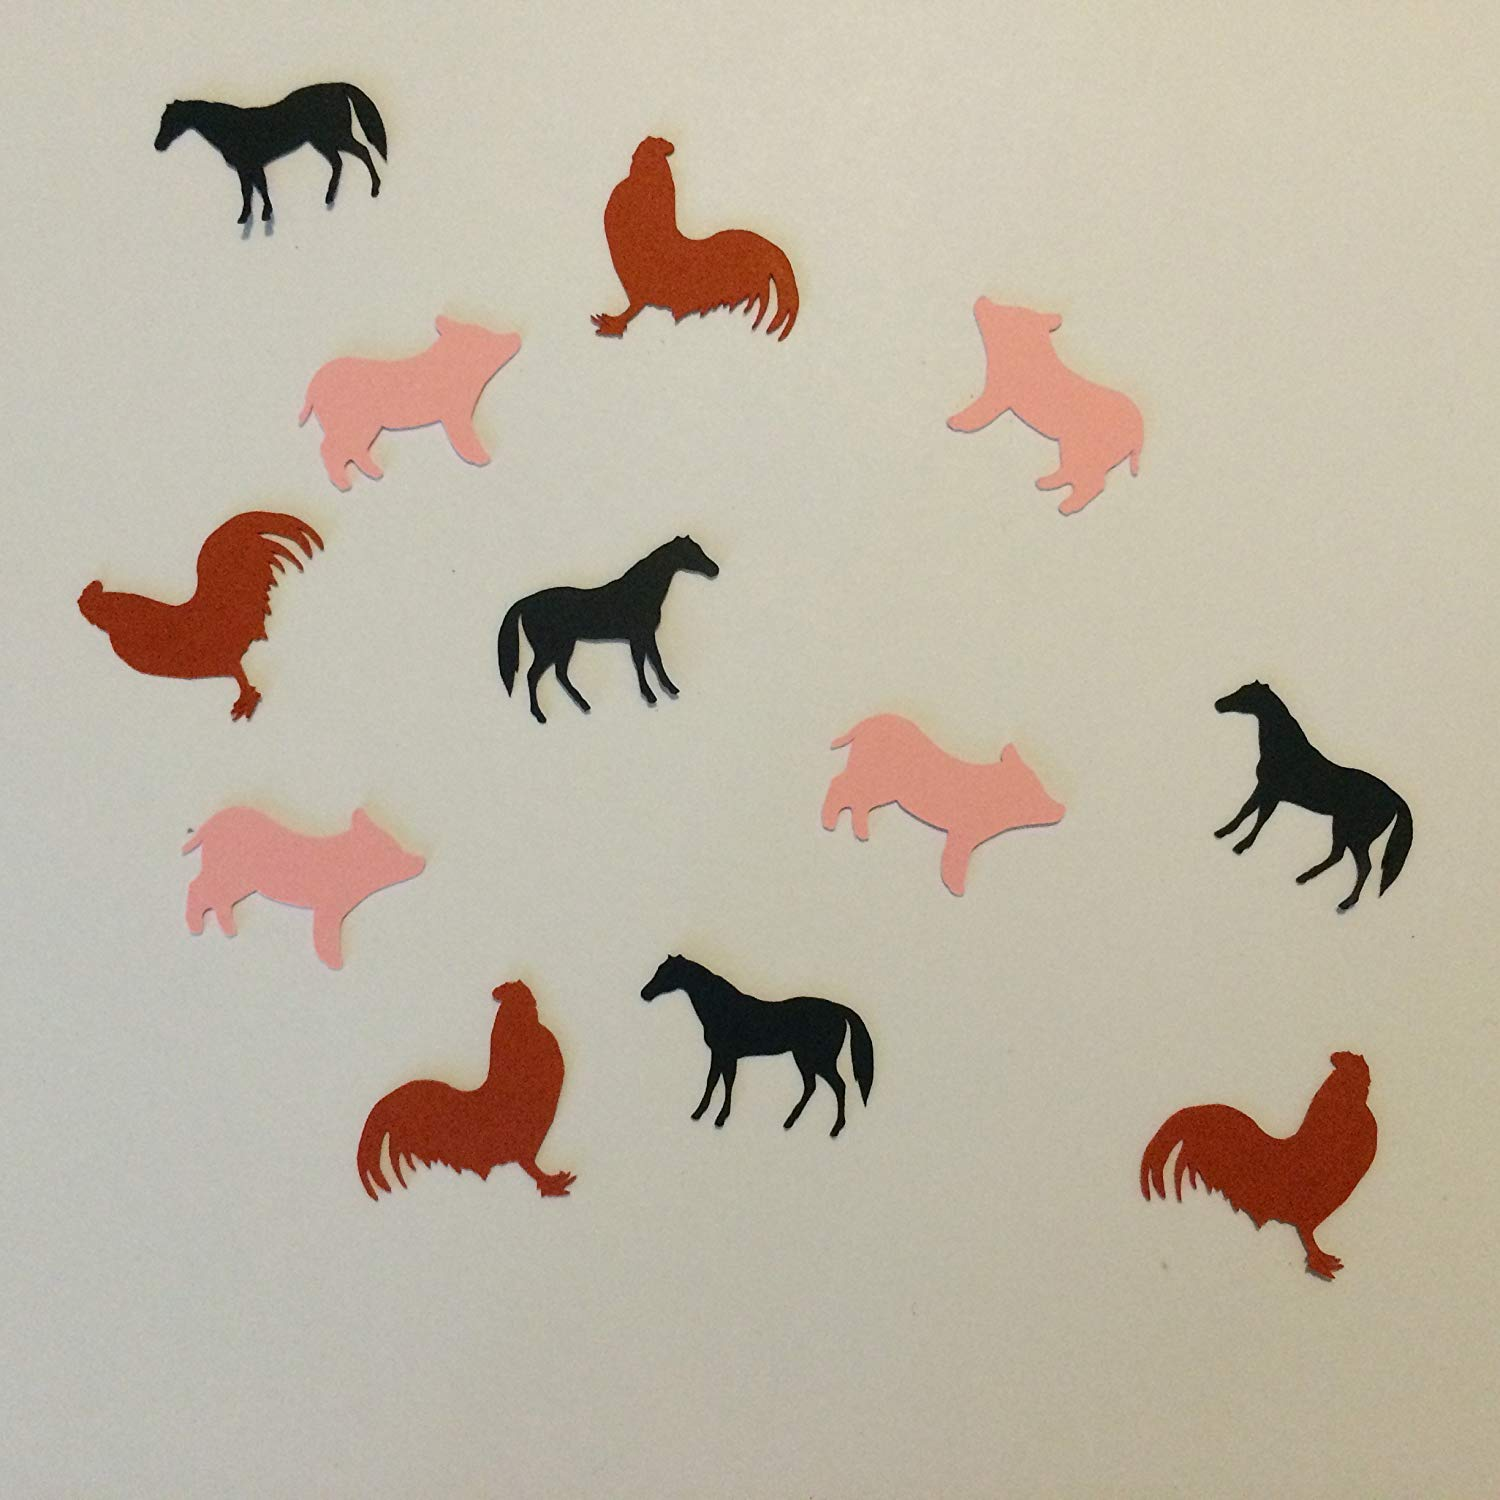 1in Confetti Set, Rooster Cut Outs, Pig Cut Outs, Horse Cut Outs, Animal Theme, Farm Animal Theme, Animal Decorations, Table Scatter, Confetti